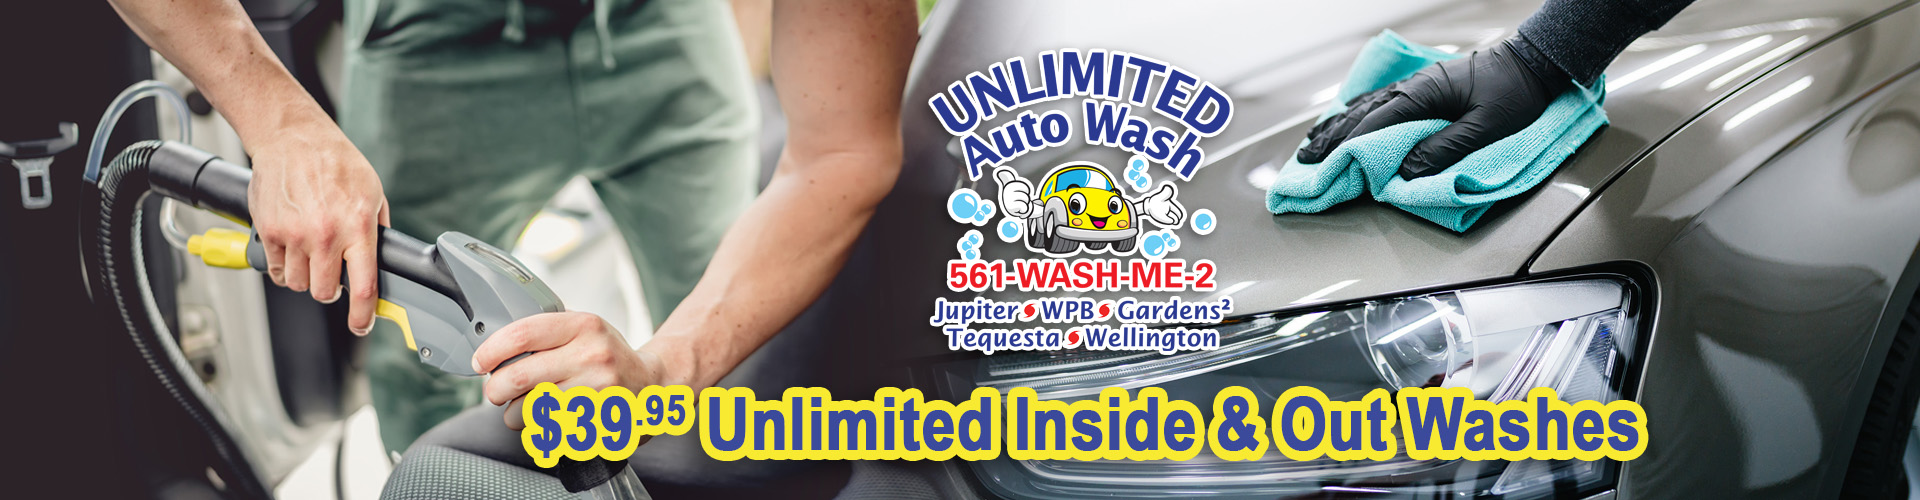 Unlimited Auto Wash Inside & Outside Washes